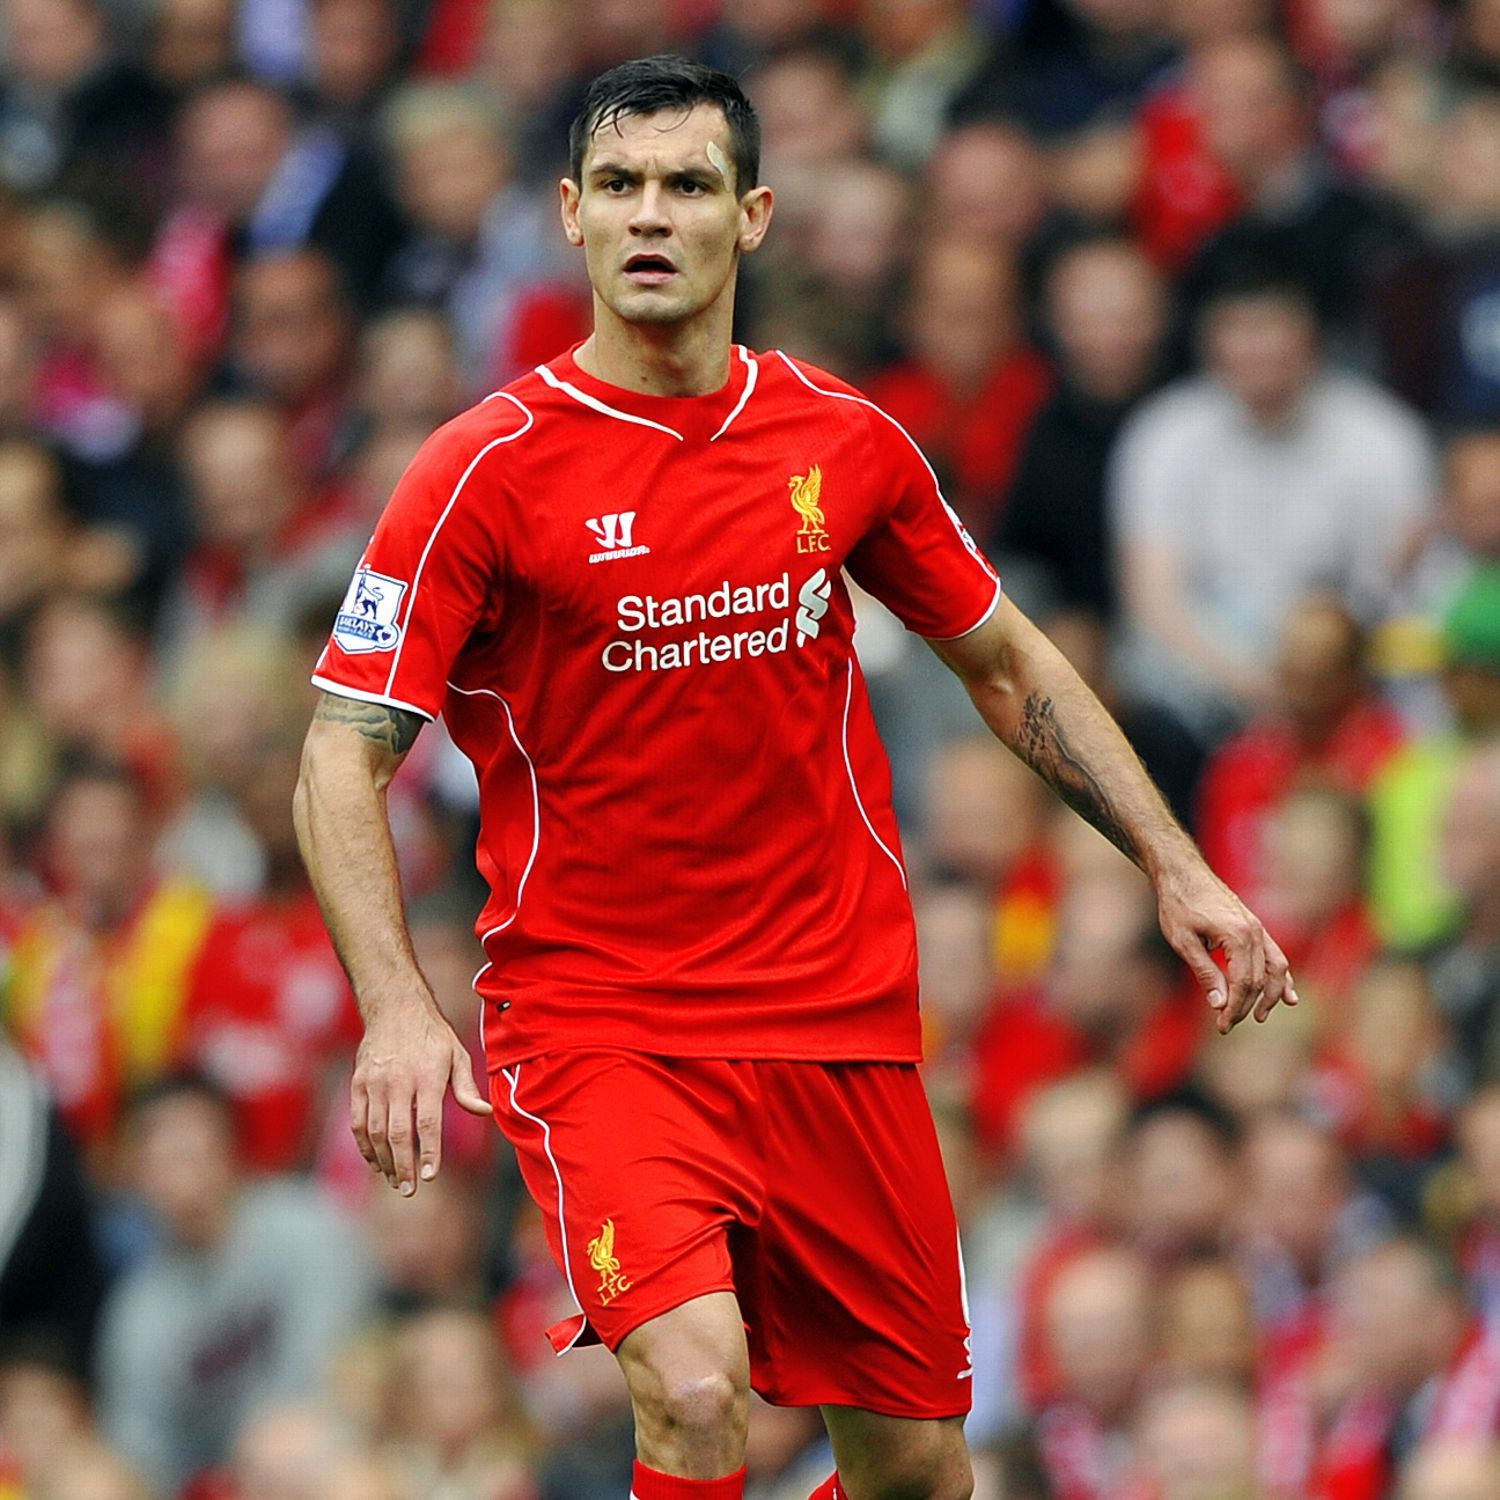 newest d039f c8173 Dejan Lovren happy to give LeBron James the Liverpool No. 6 ...